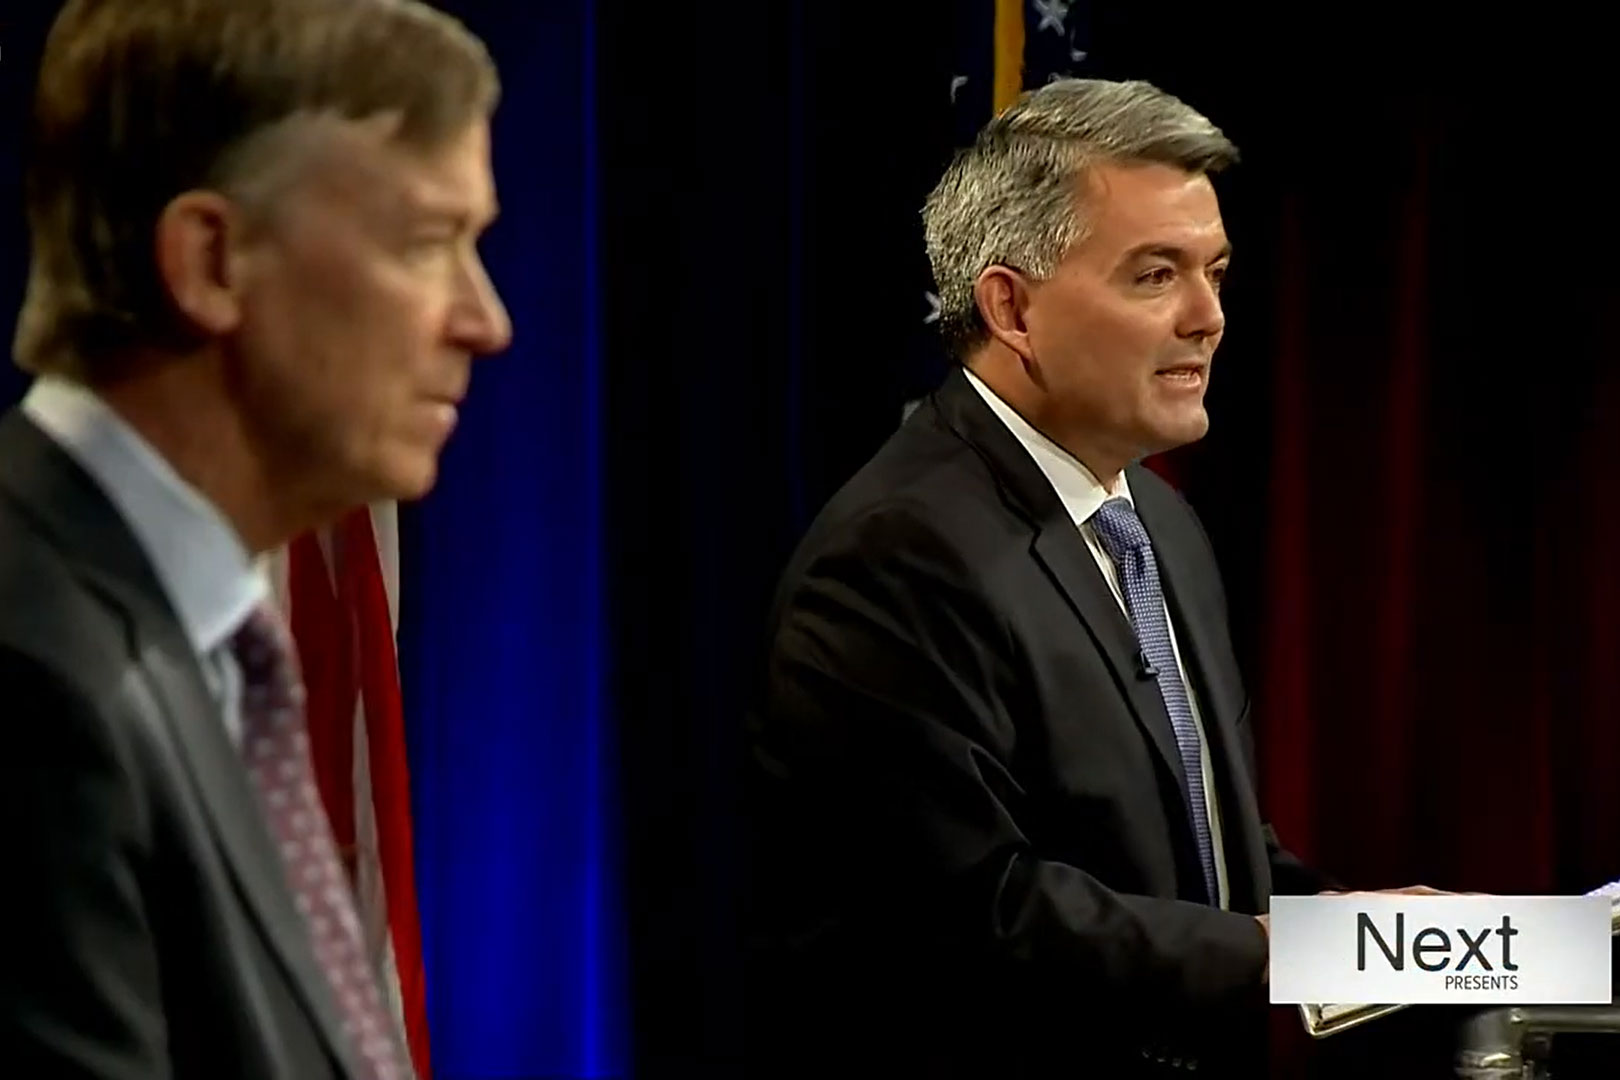 Sen. Cory Gardner and former Gov. John Hickenlooper, foreground, debate a question regarding gun laws in their final debate hosted by 9News at Colorado State University in Fort Collins, Oct. 13, 2020.